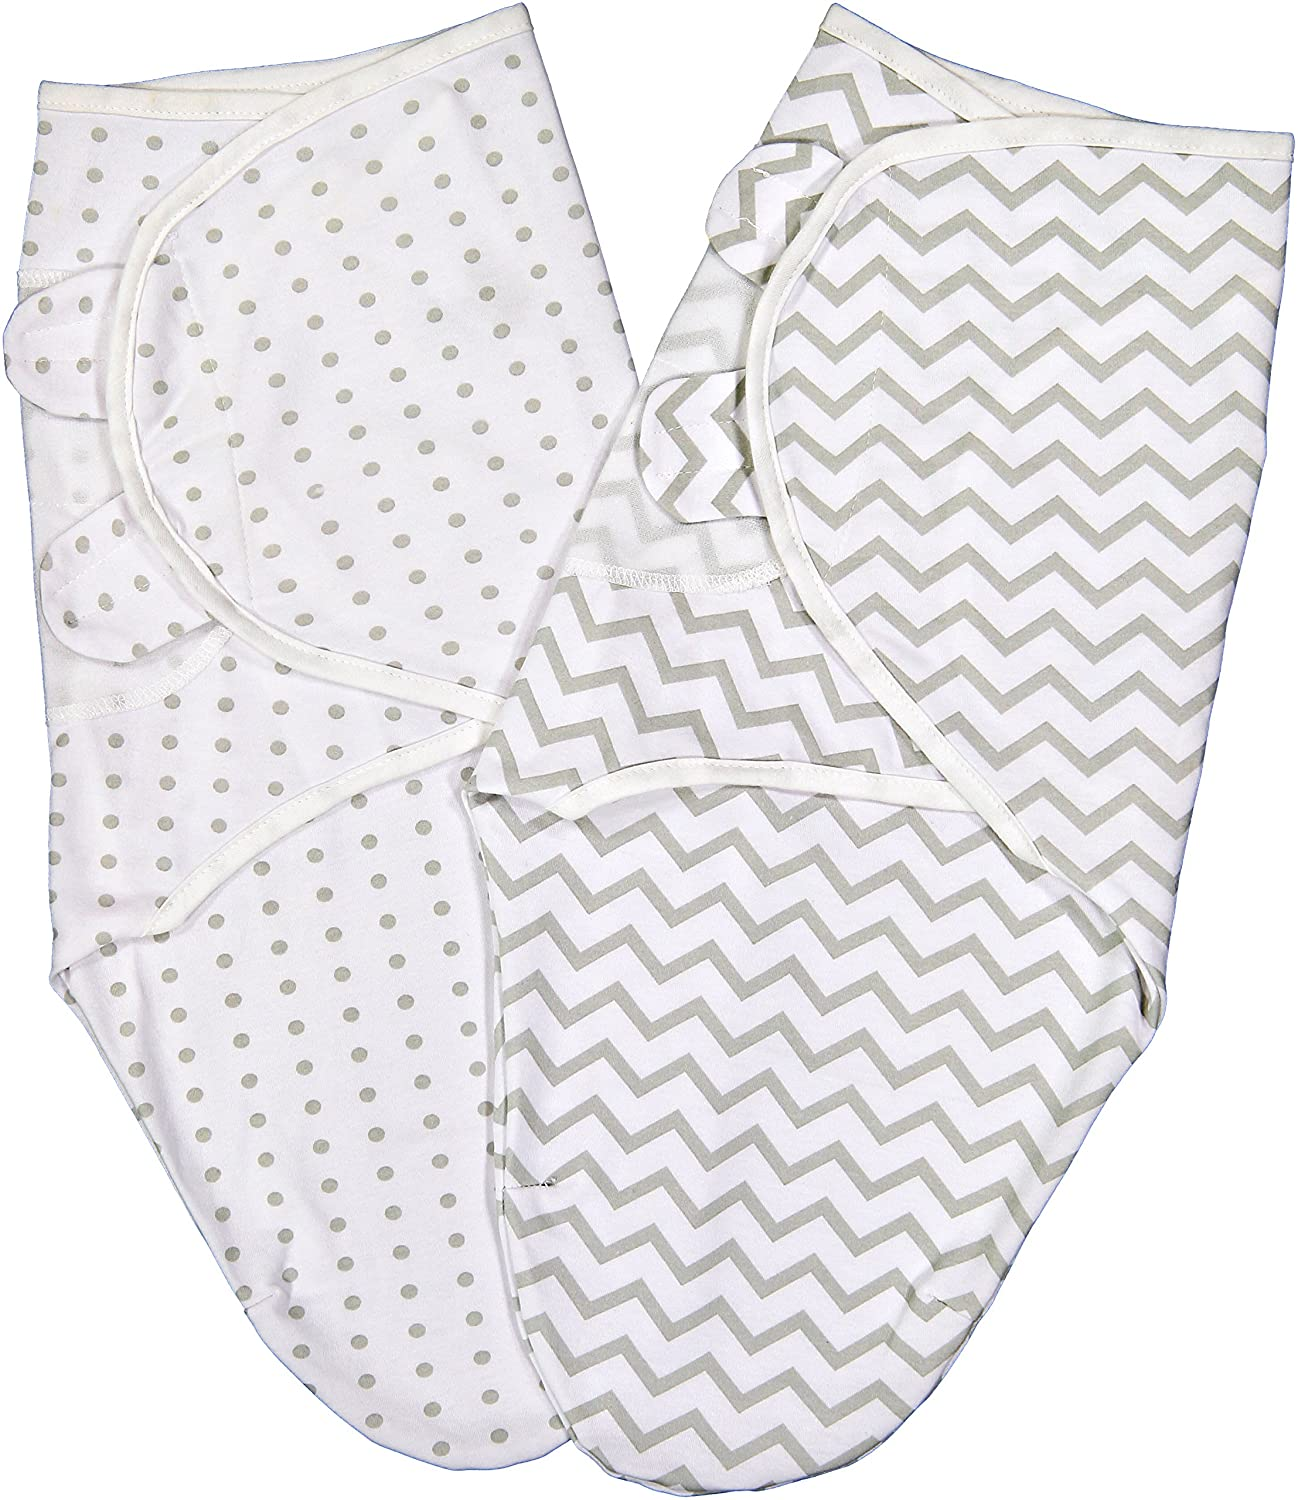 Ely's & Co Swaddle Blanket Adjustable Infant Baby Wrap Set 2 Pack (0-3 Months, Grey Chevron and Polka Dots) Ely's & Co